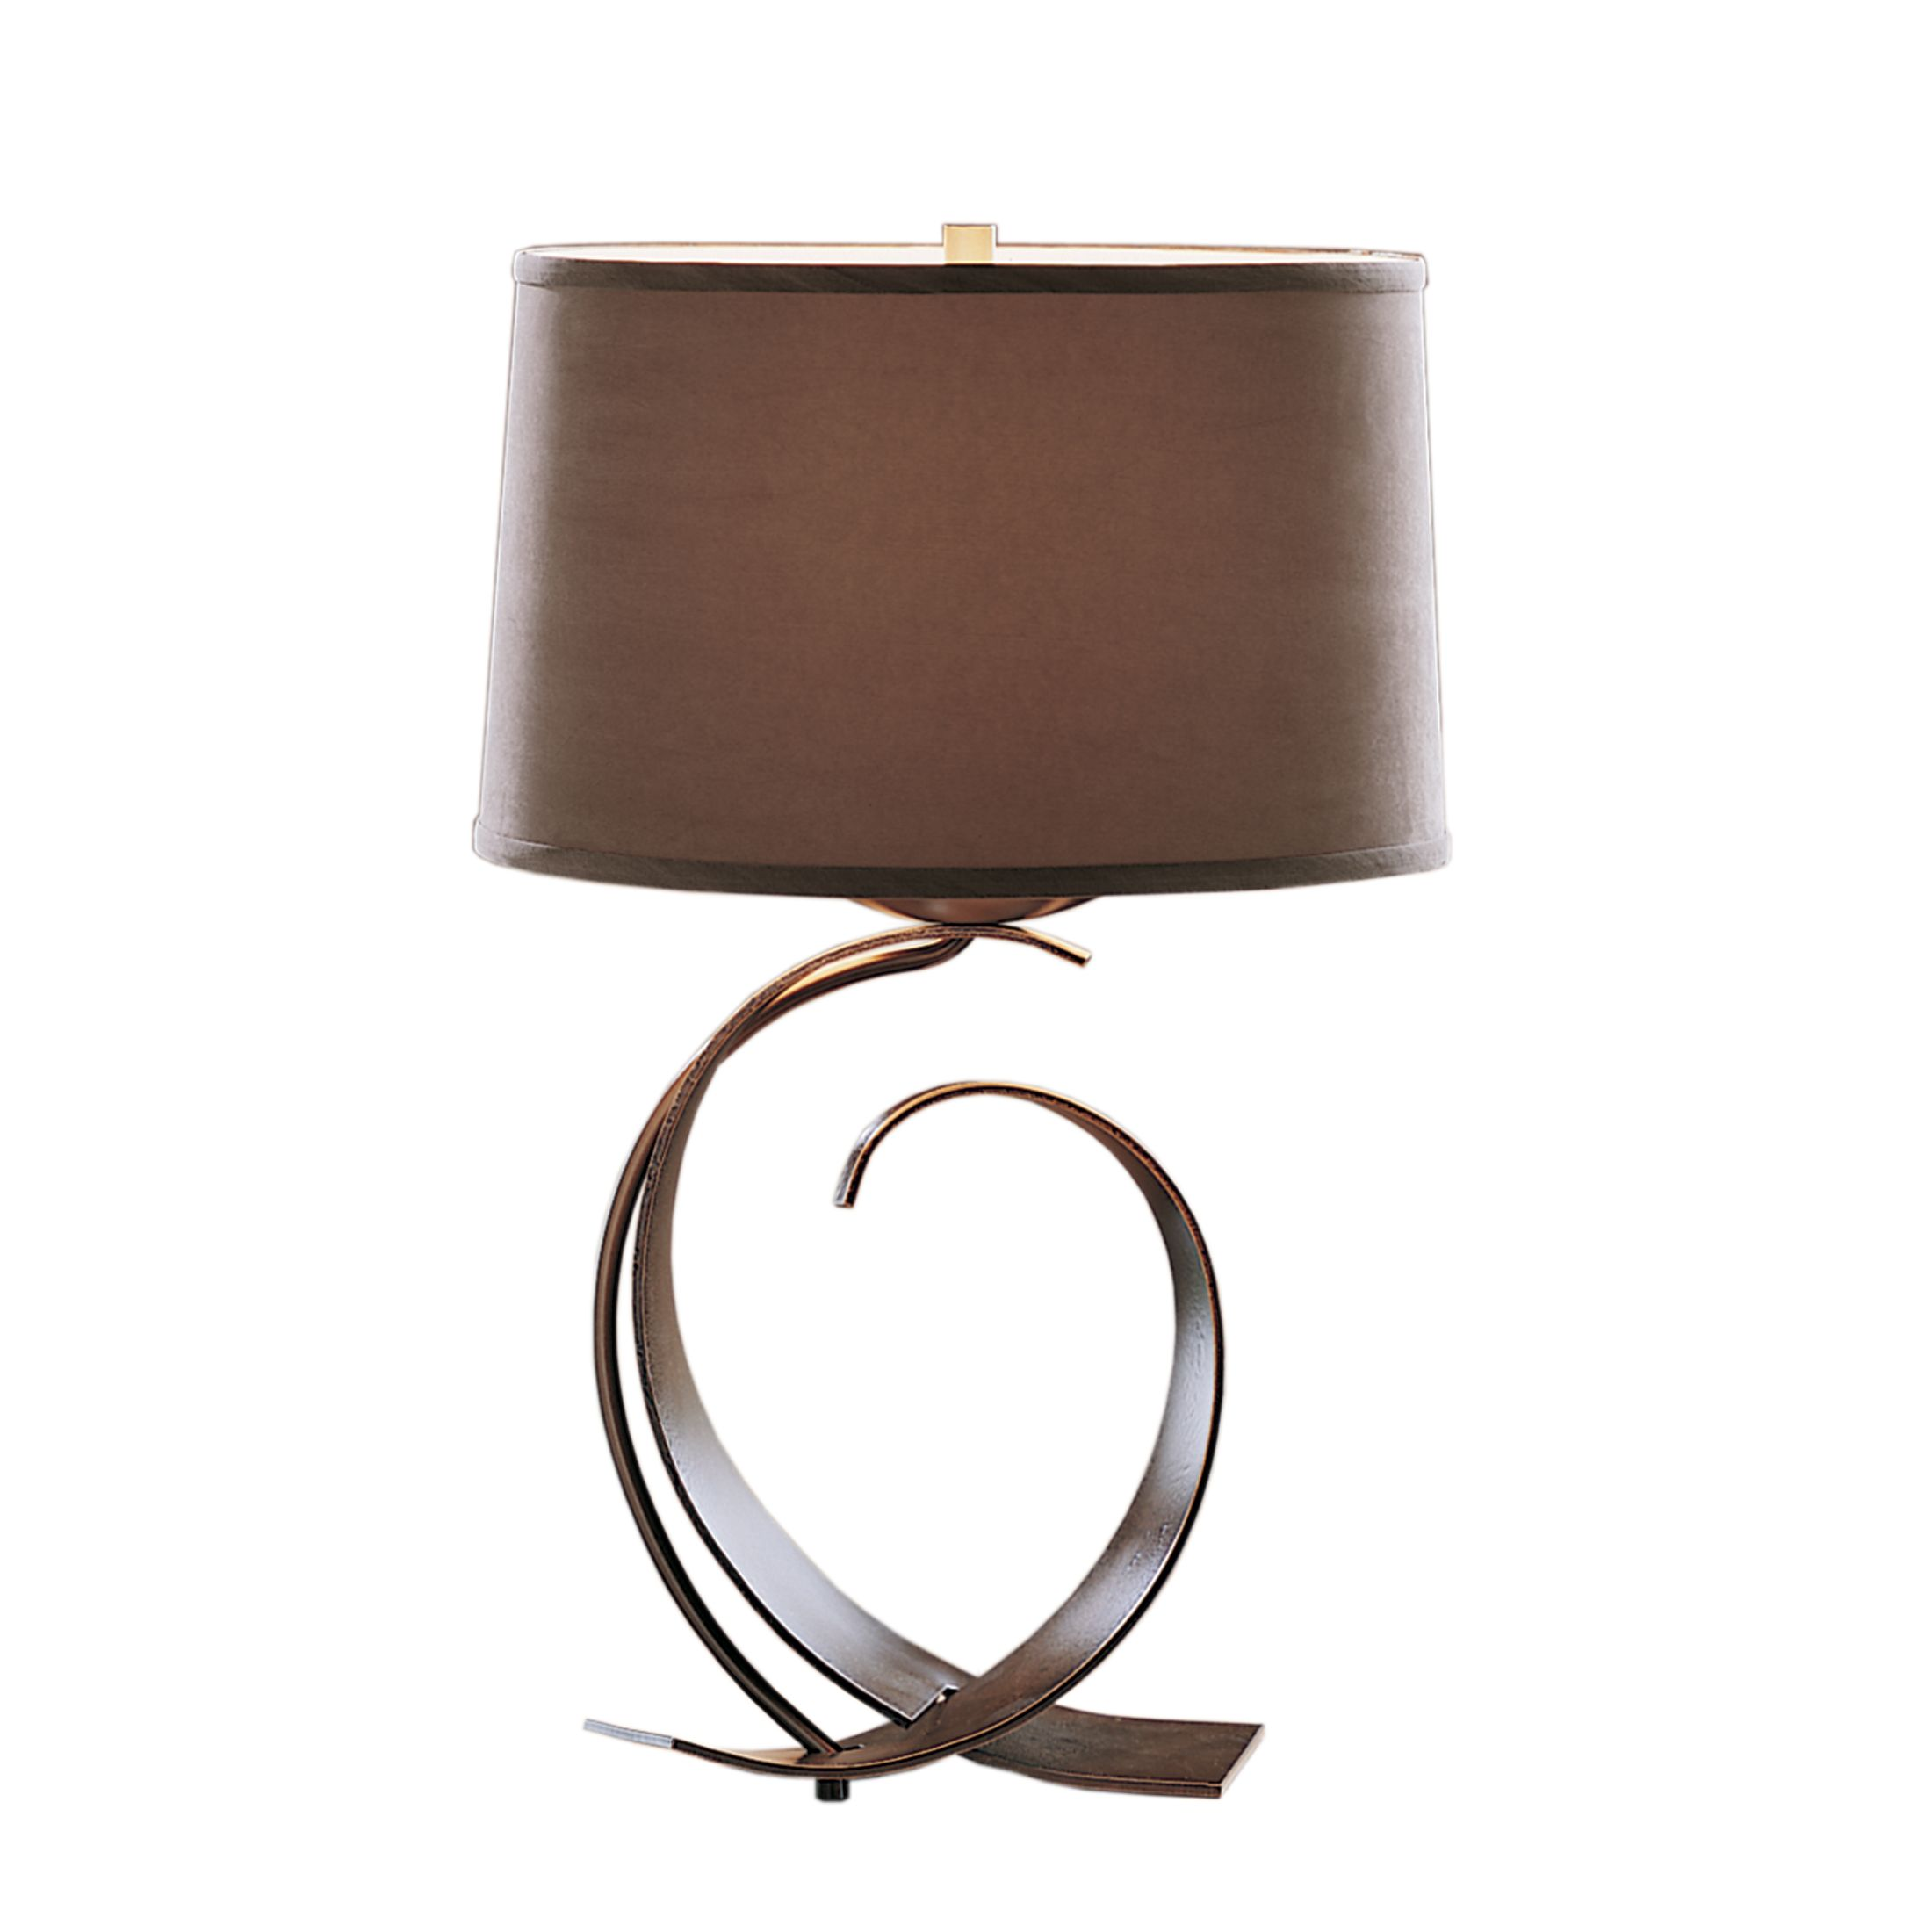 Fullered impressions table lamp hubbardton forge product detail fullered impressions table lamp aloadofball Choice Image